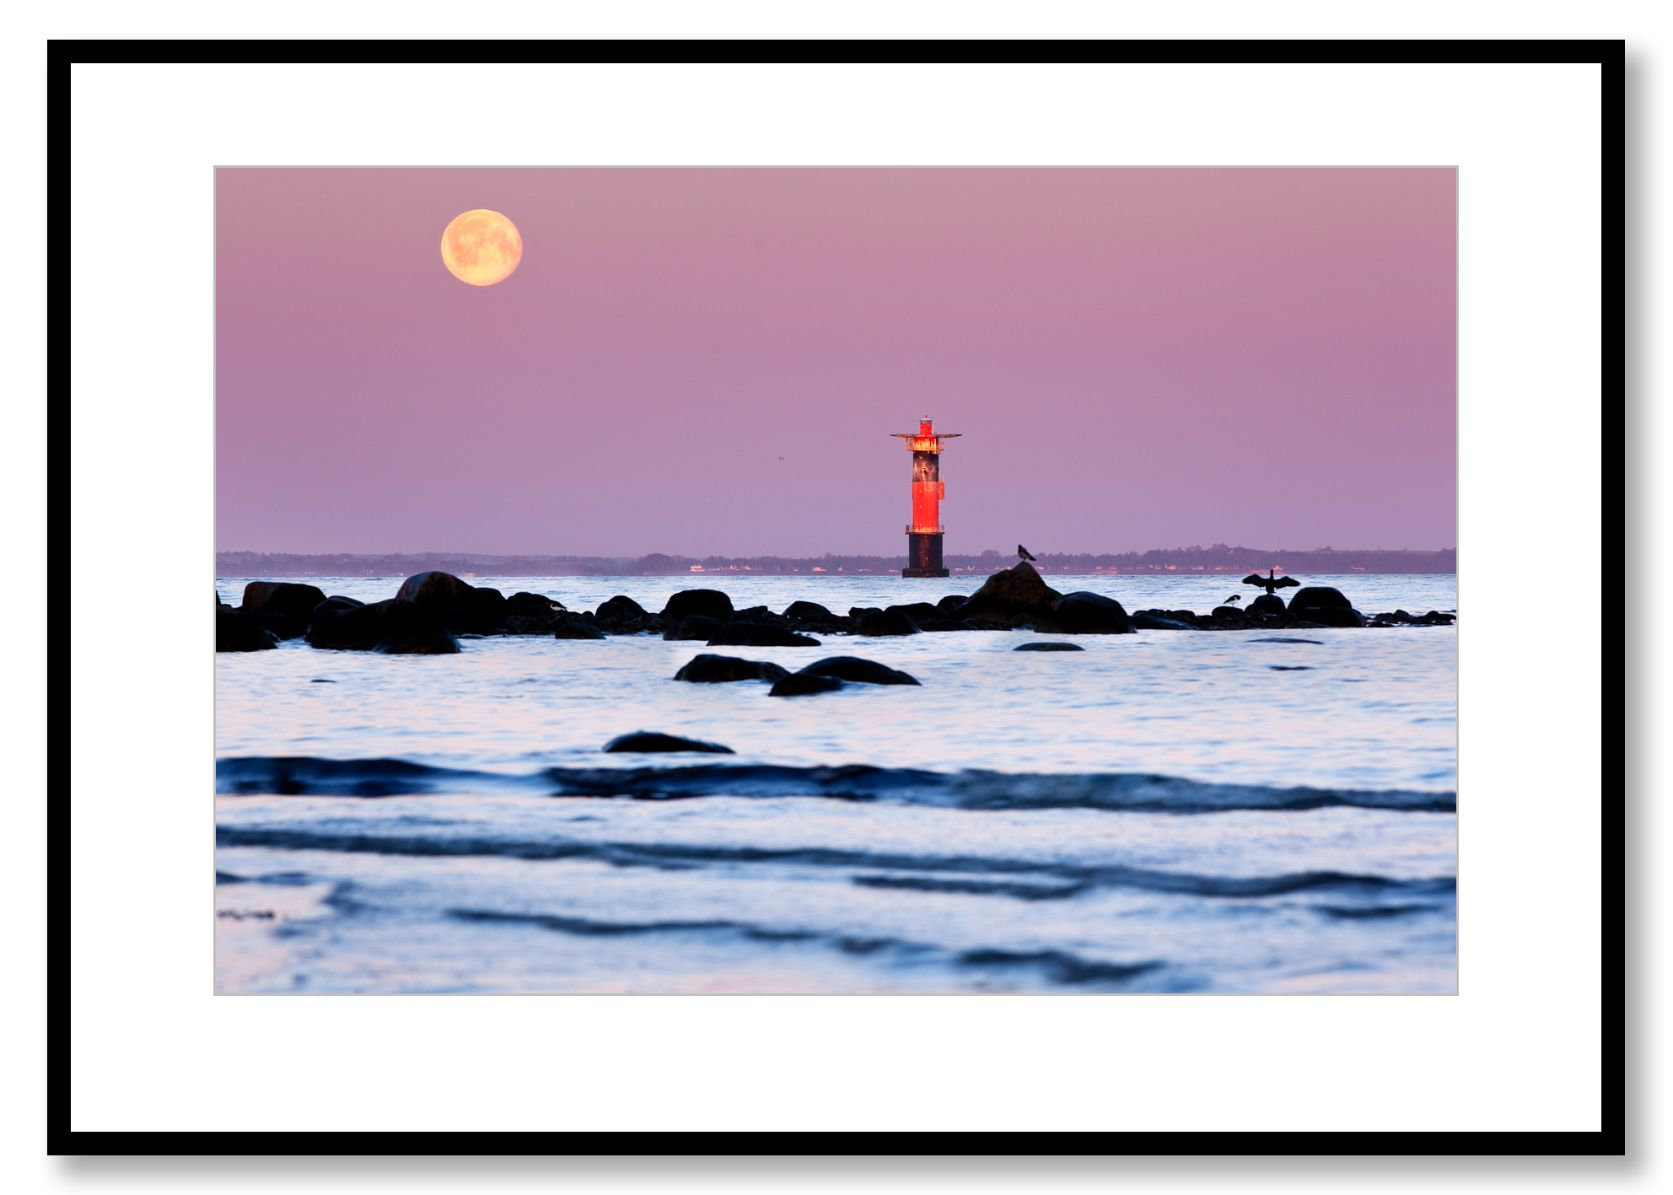 "Moonset, Lighthouse ""Svinbådan"", Viken, Sweden. Photo by Fredrik Rege"